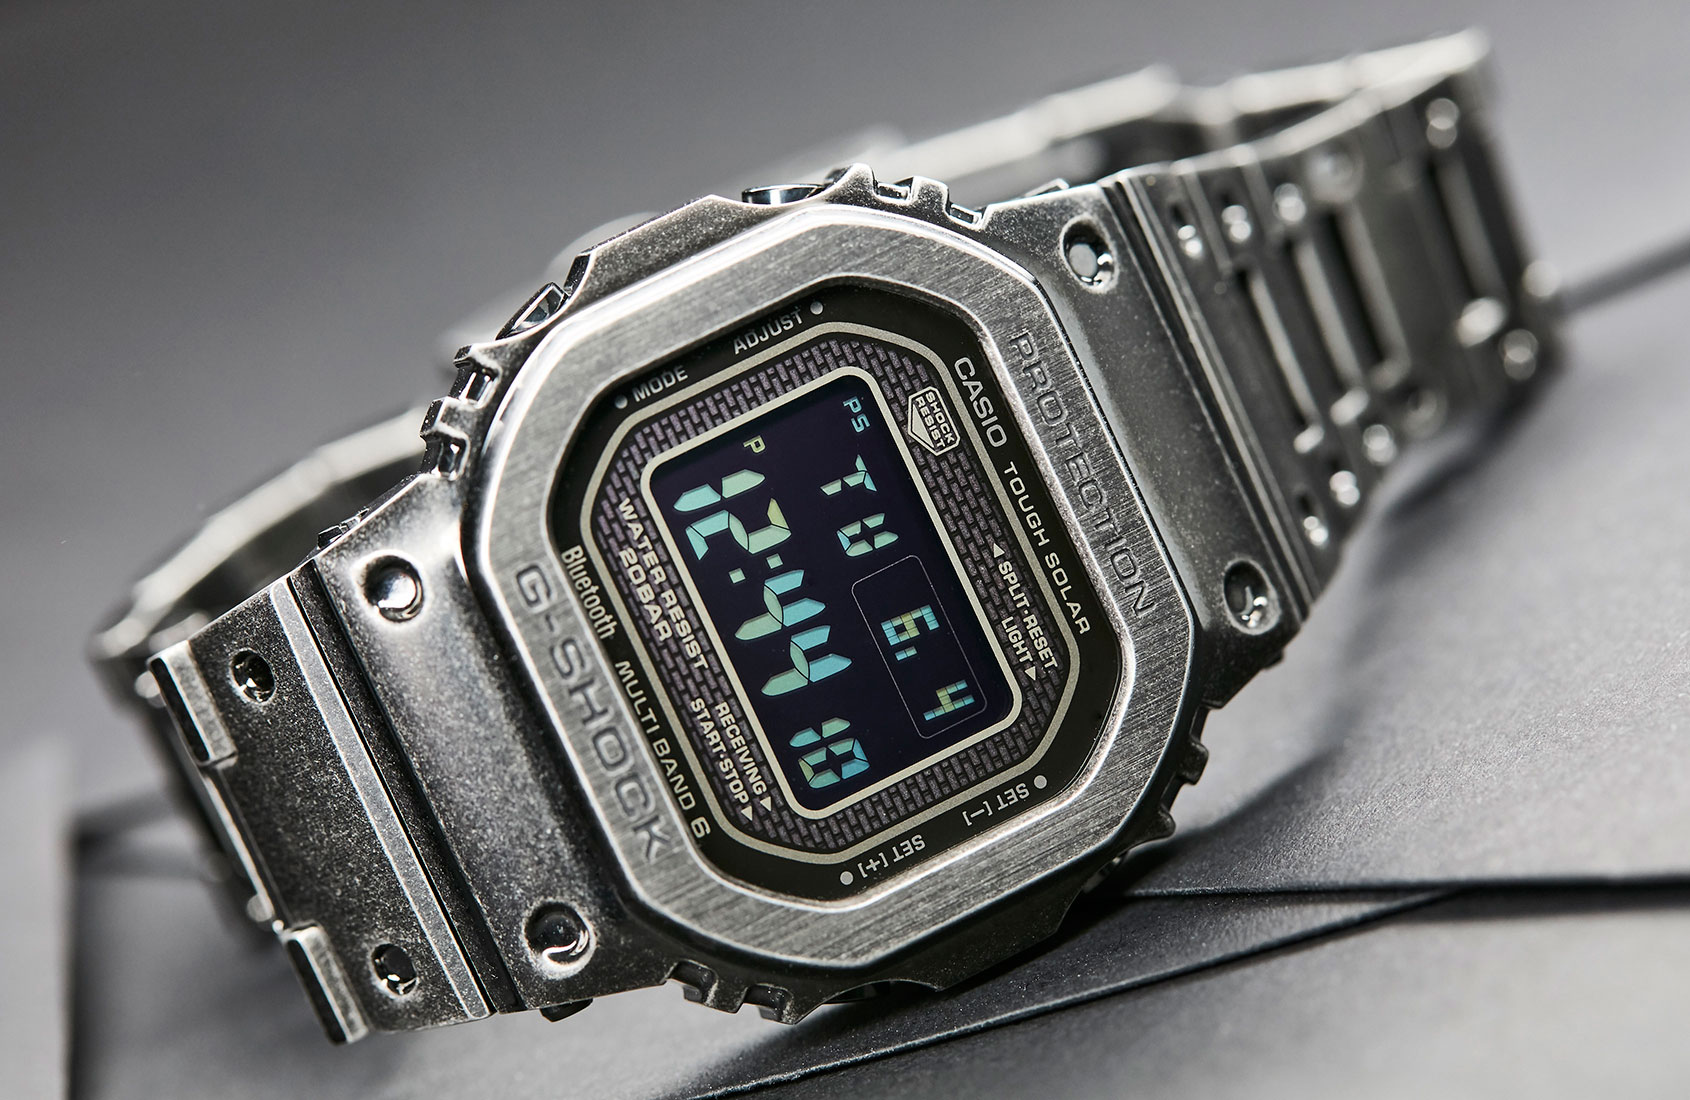 Andrew talks about how Time+Tide started, and explains why he copped the Casio G-Shock Full Metal Black Aged IP